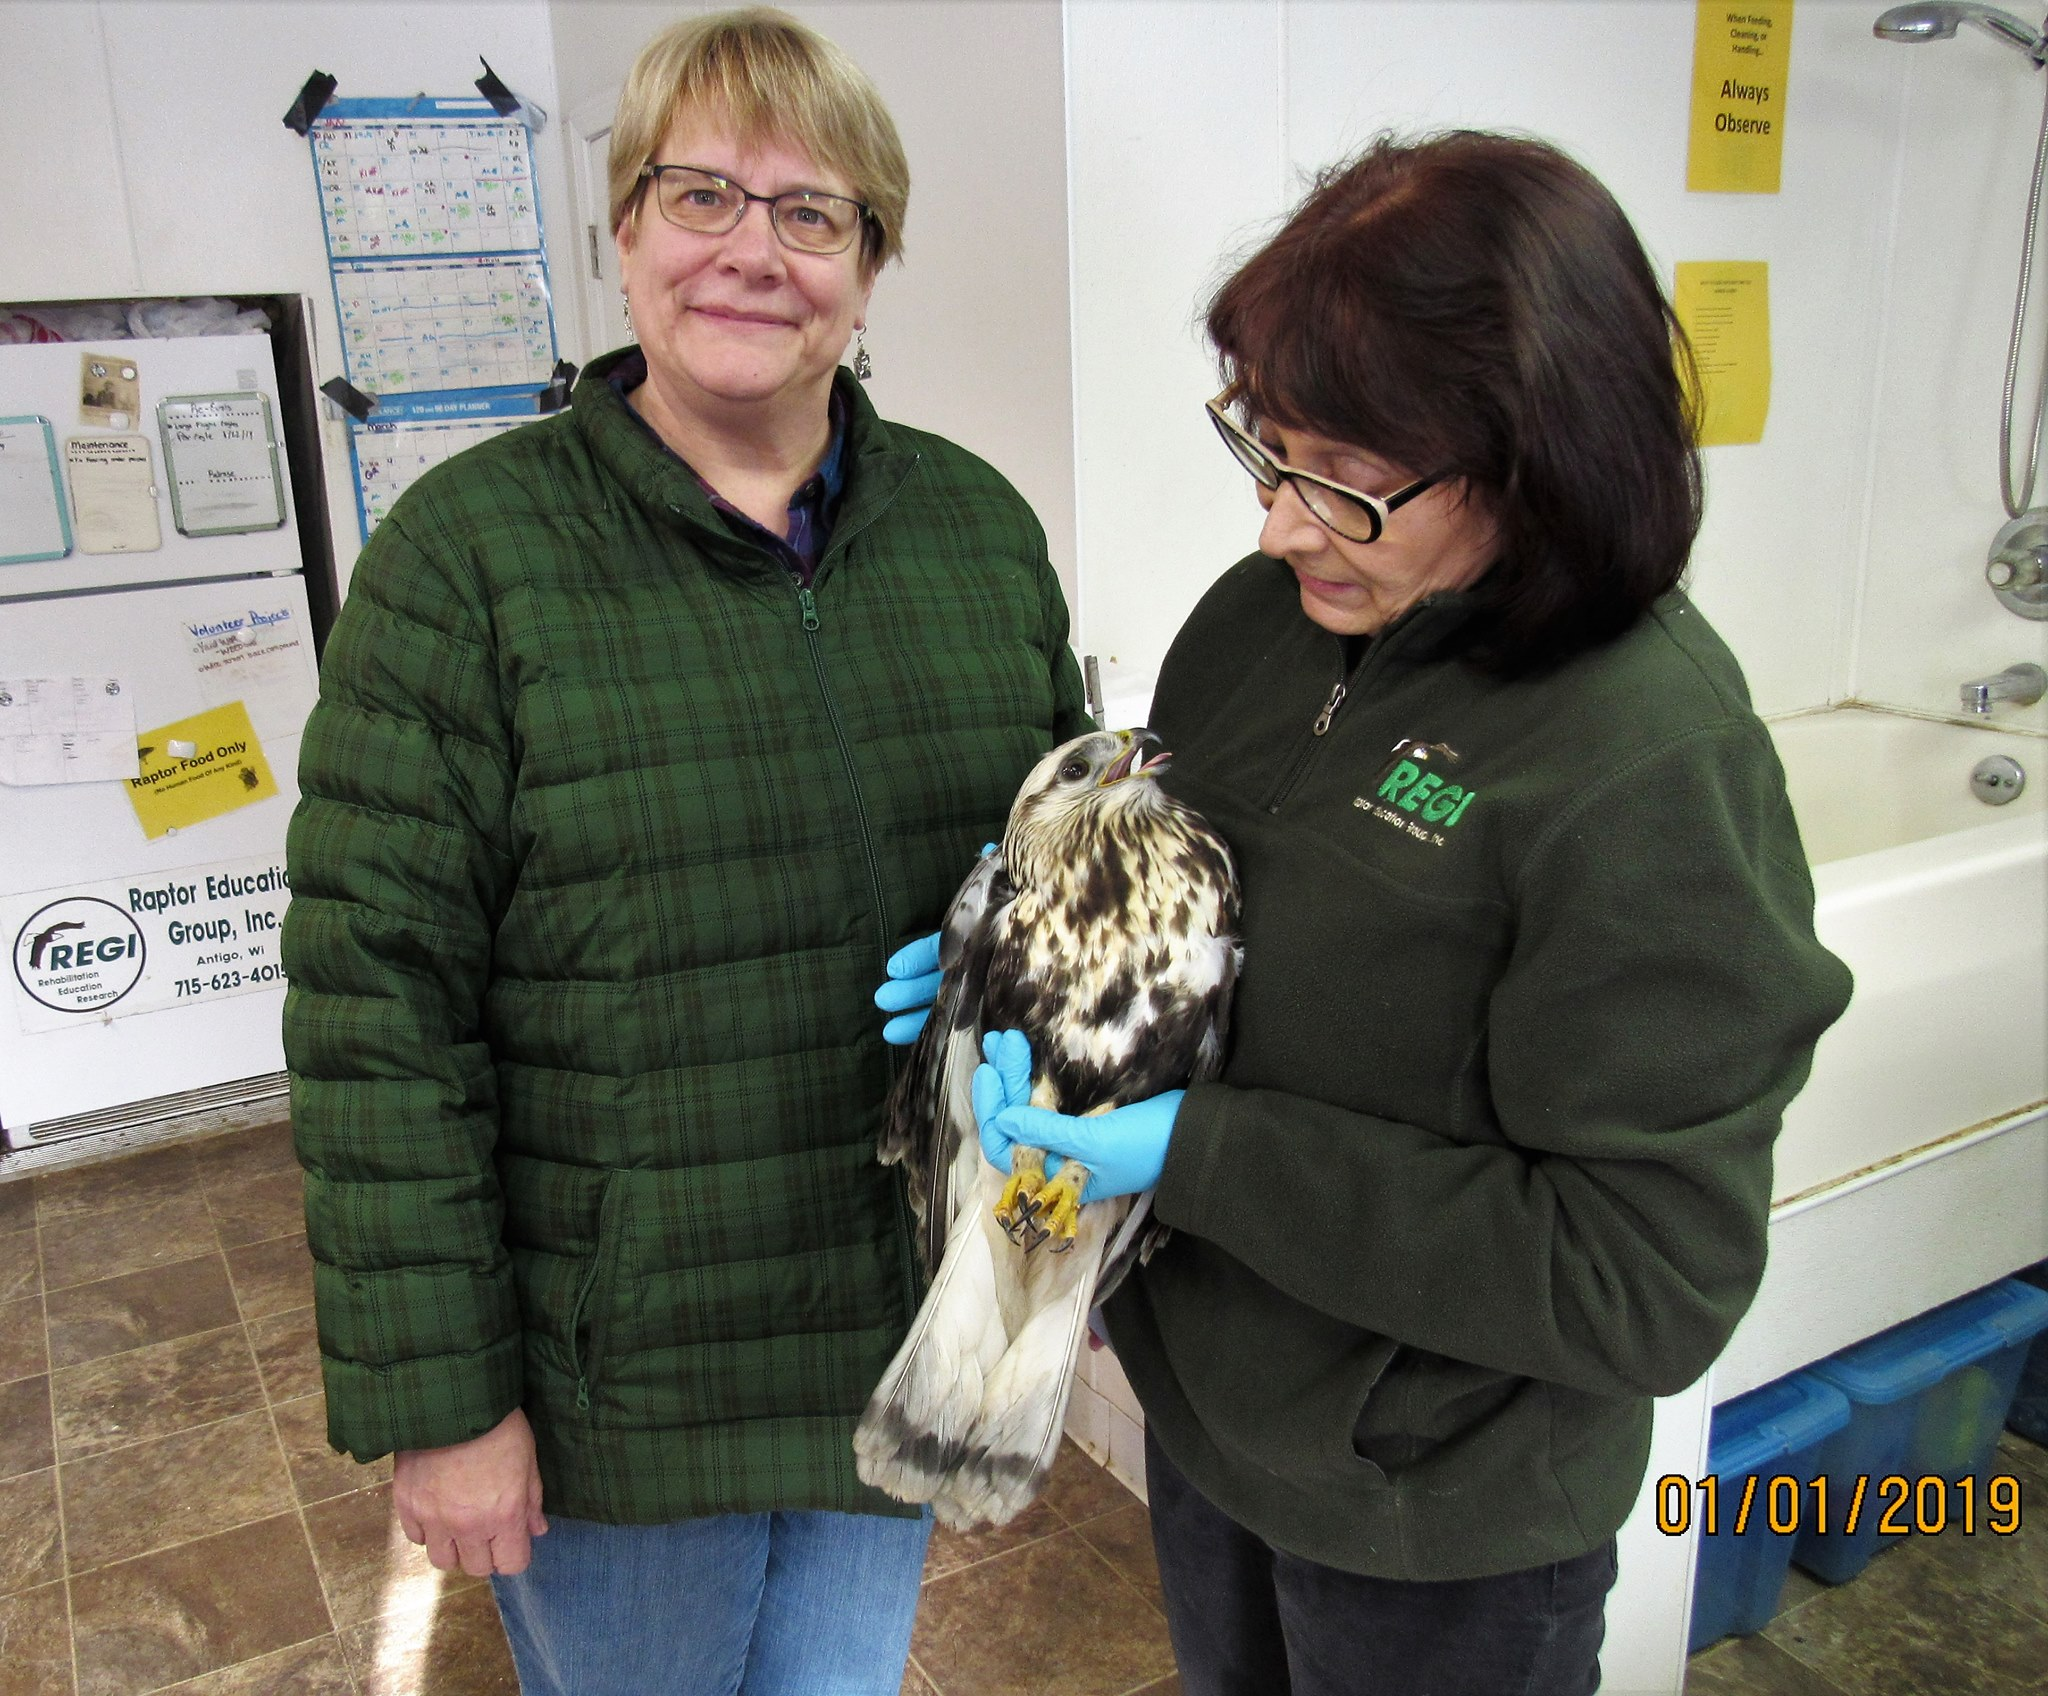 Thank you to Dawn Stein for transporting this stunning hawk to REGI.